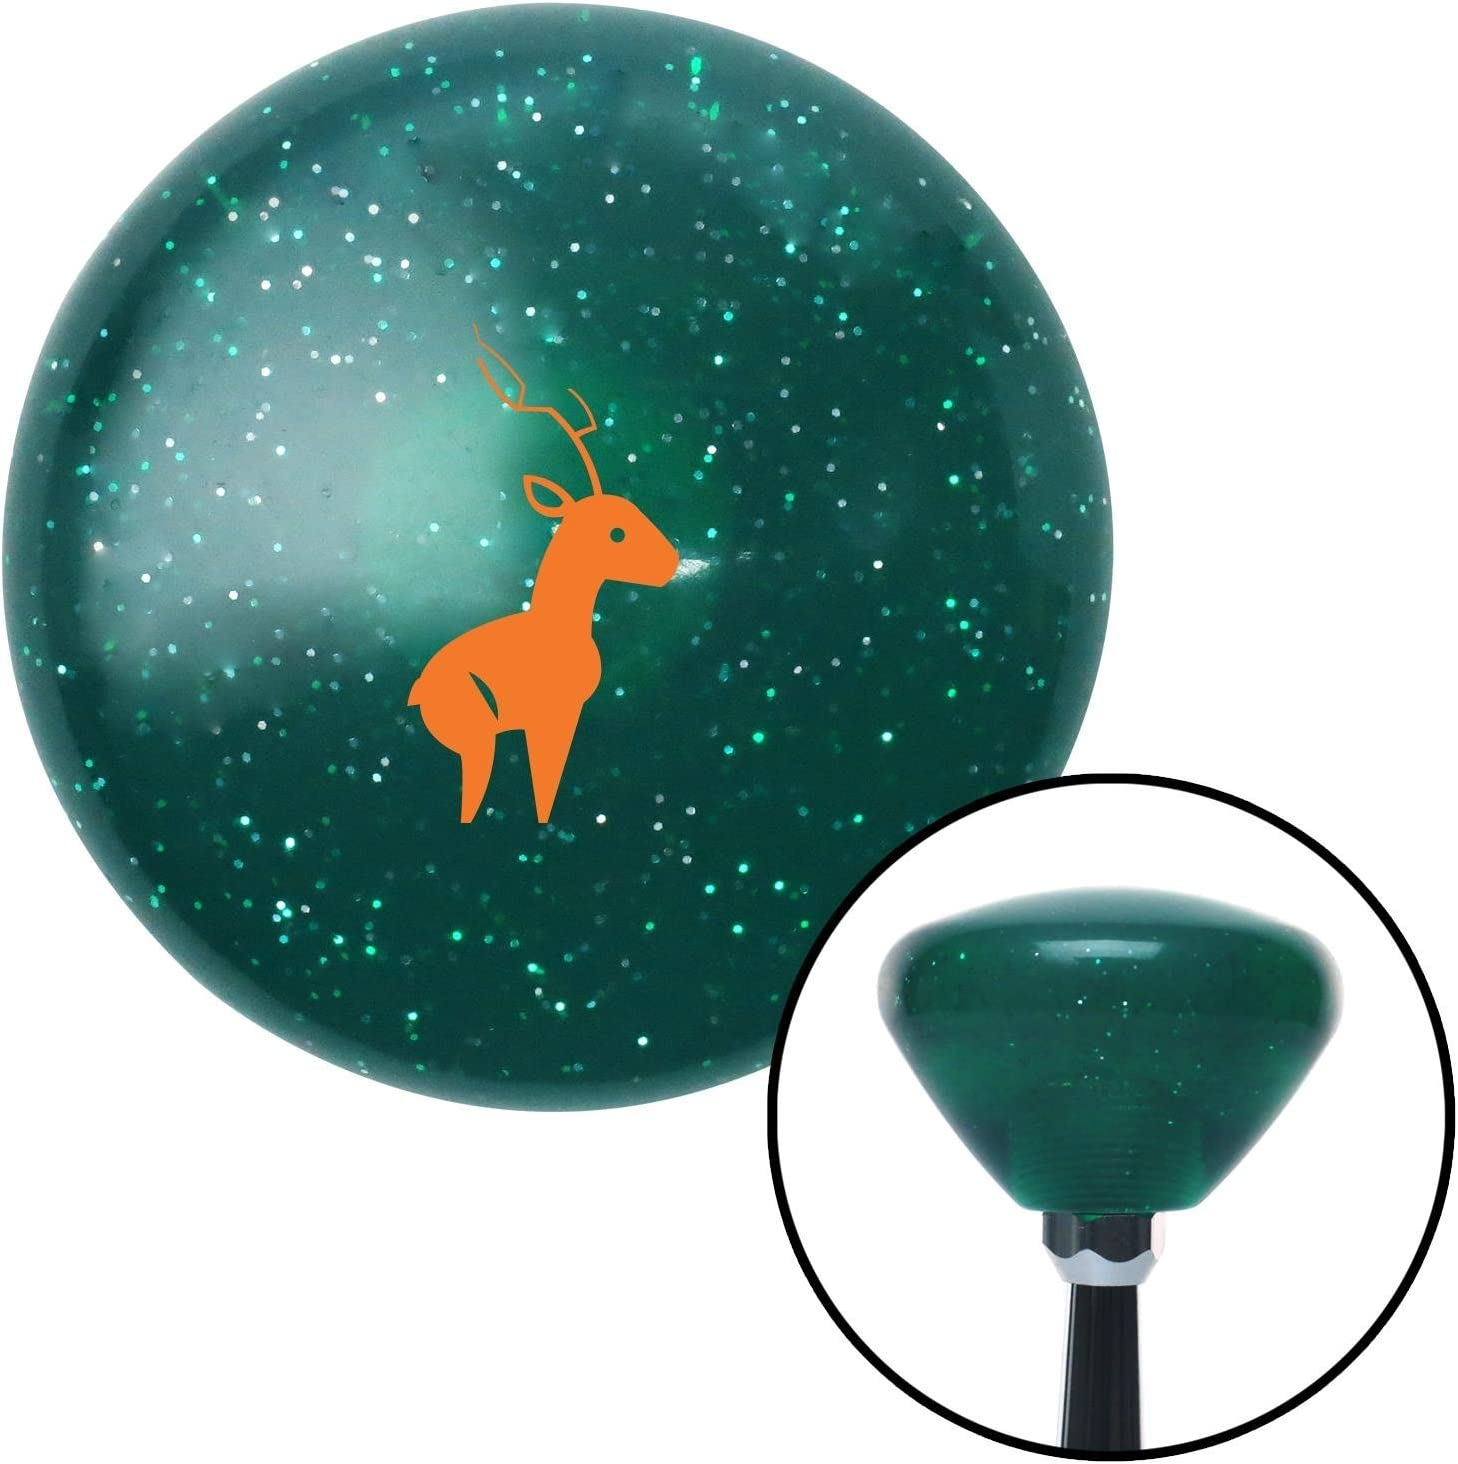 Orange Deer American Shifter 207718 Green Retro Metal Flake Shift Knob with M16 x 1.5 Insert